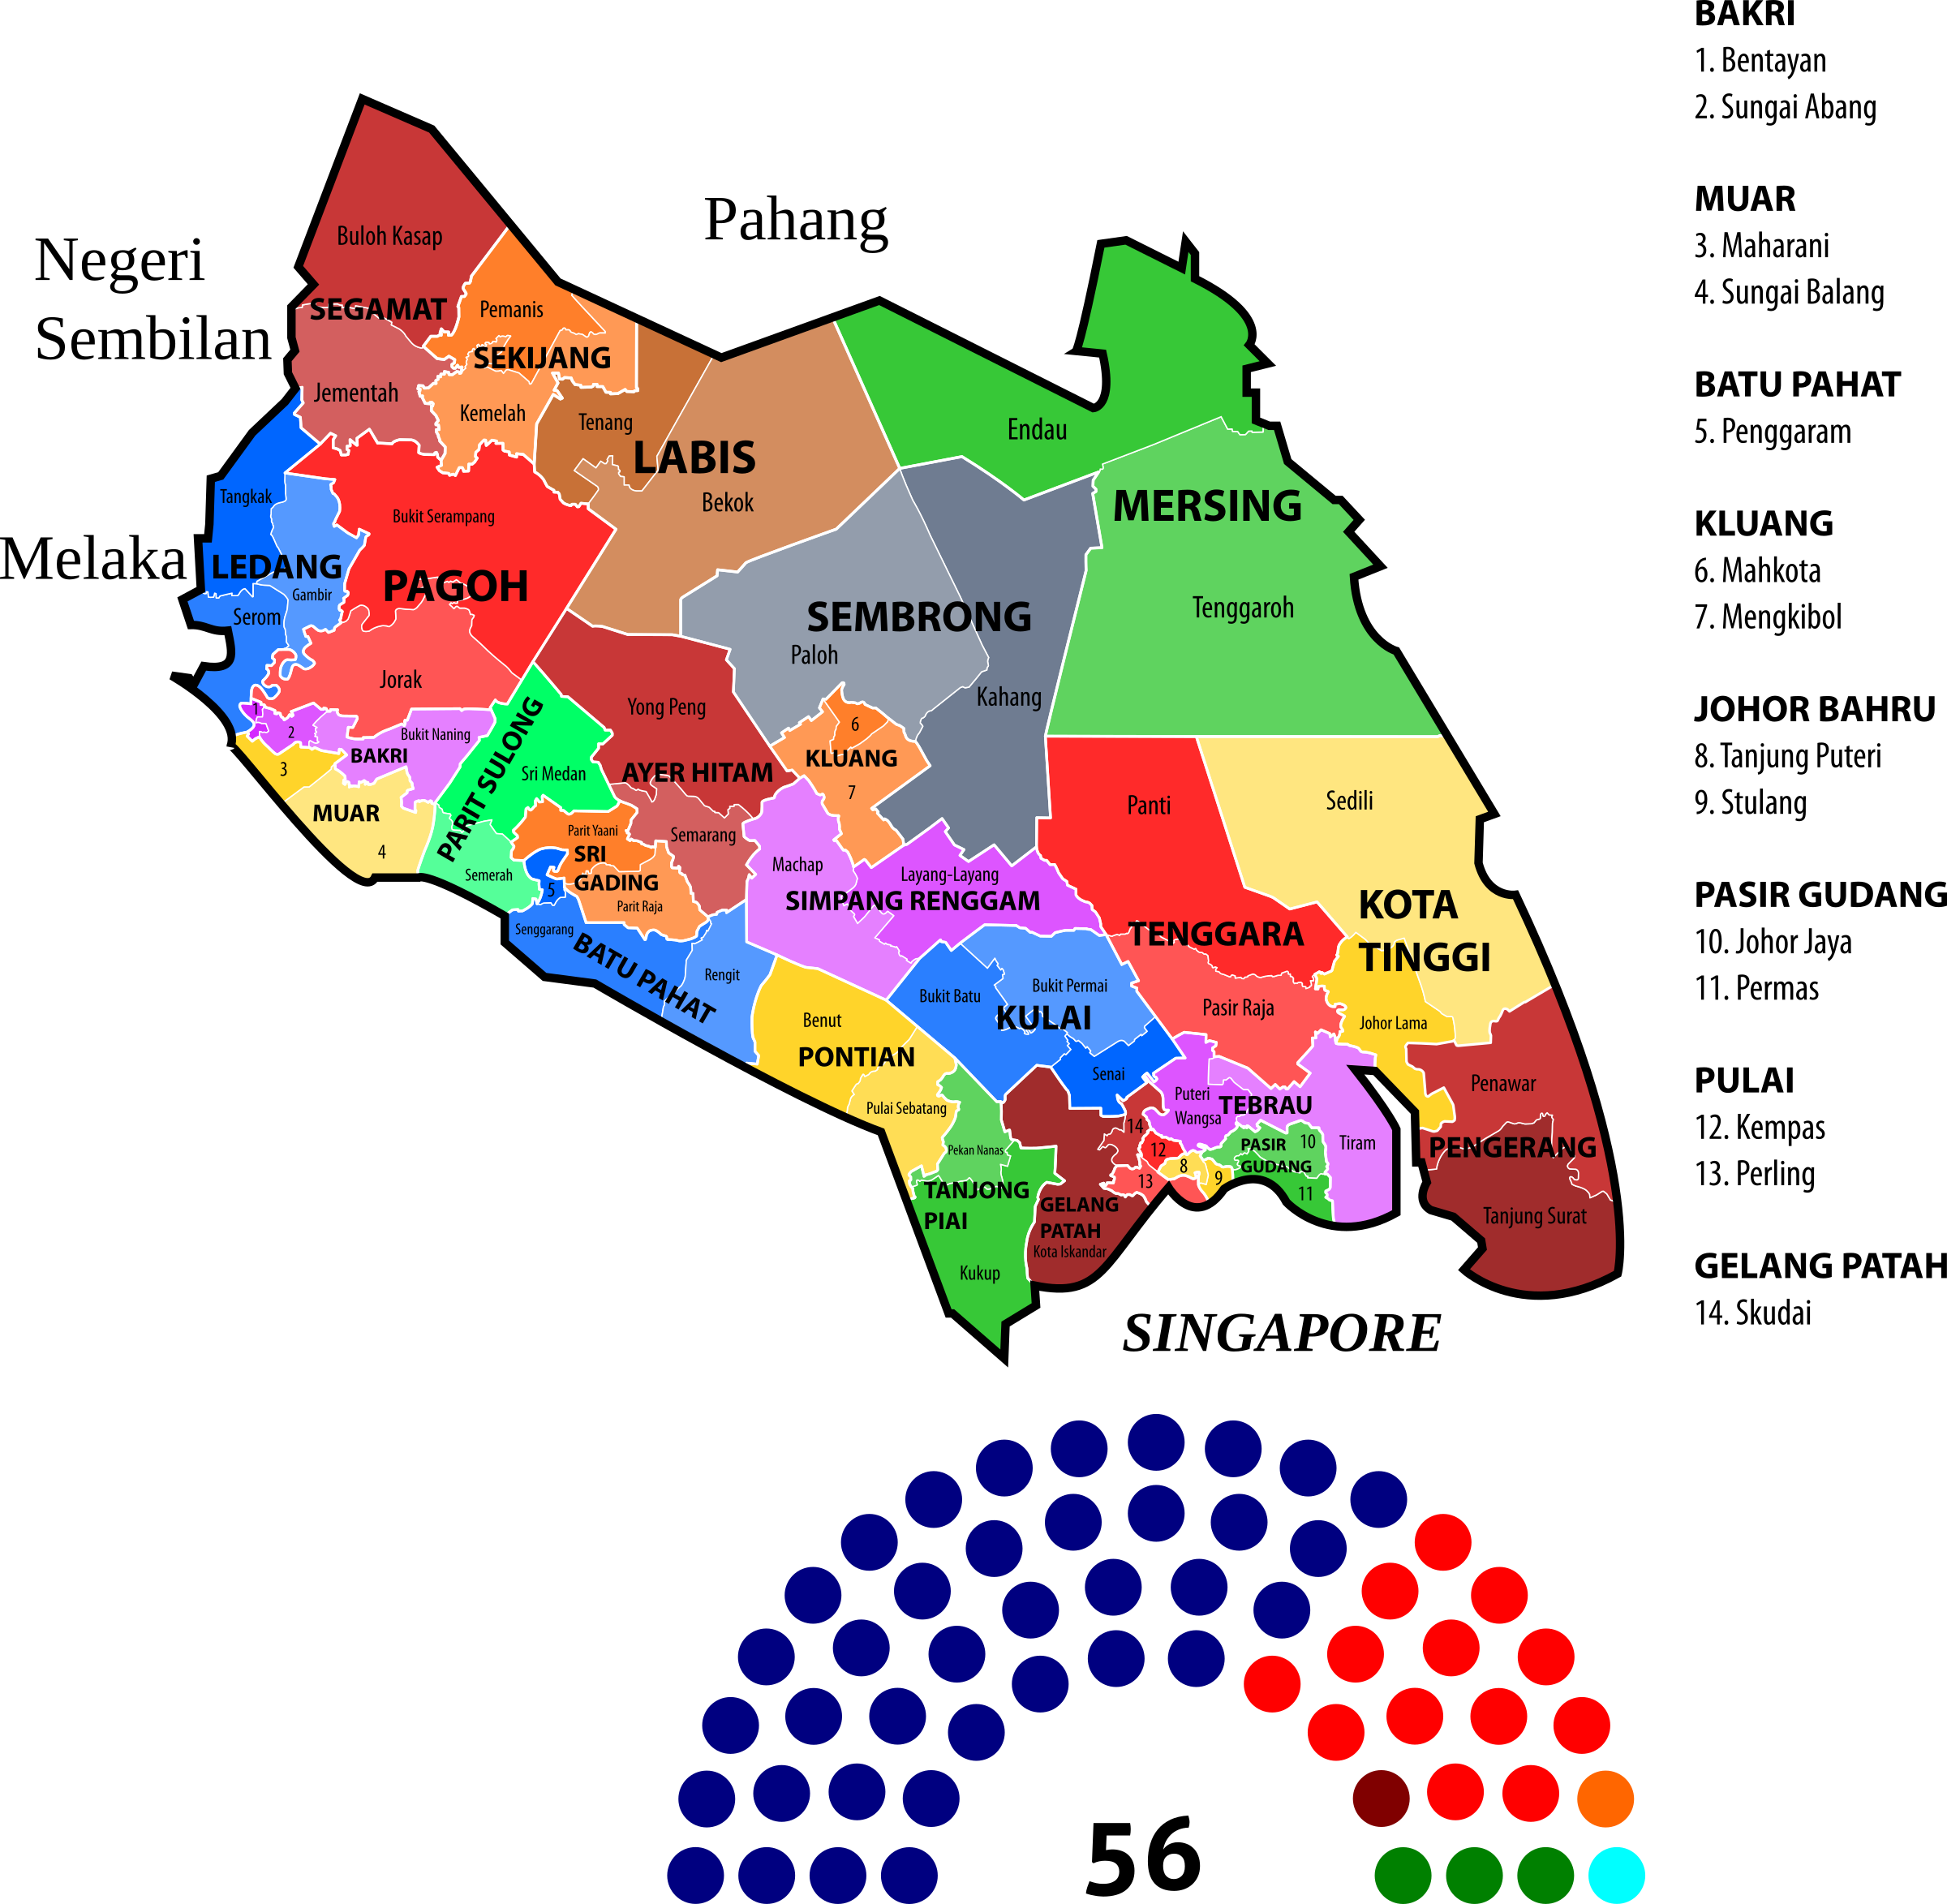 Johor State Legislative Assembly Constituencies (2013) by derkommander0916